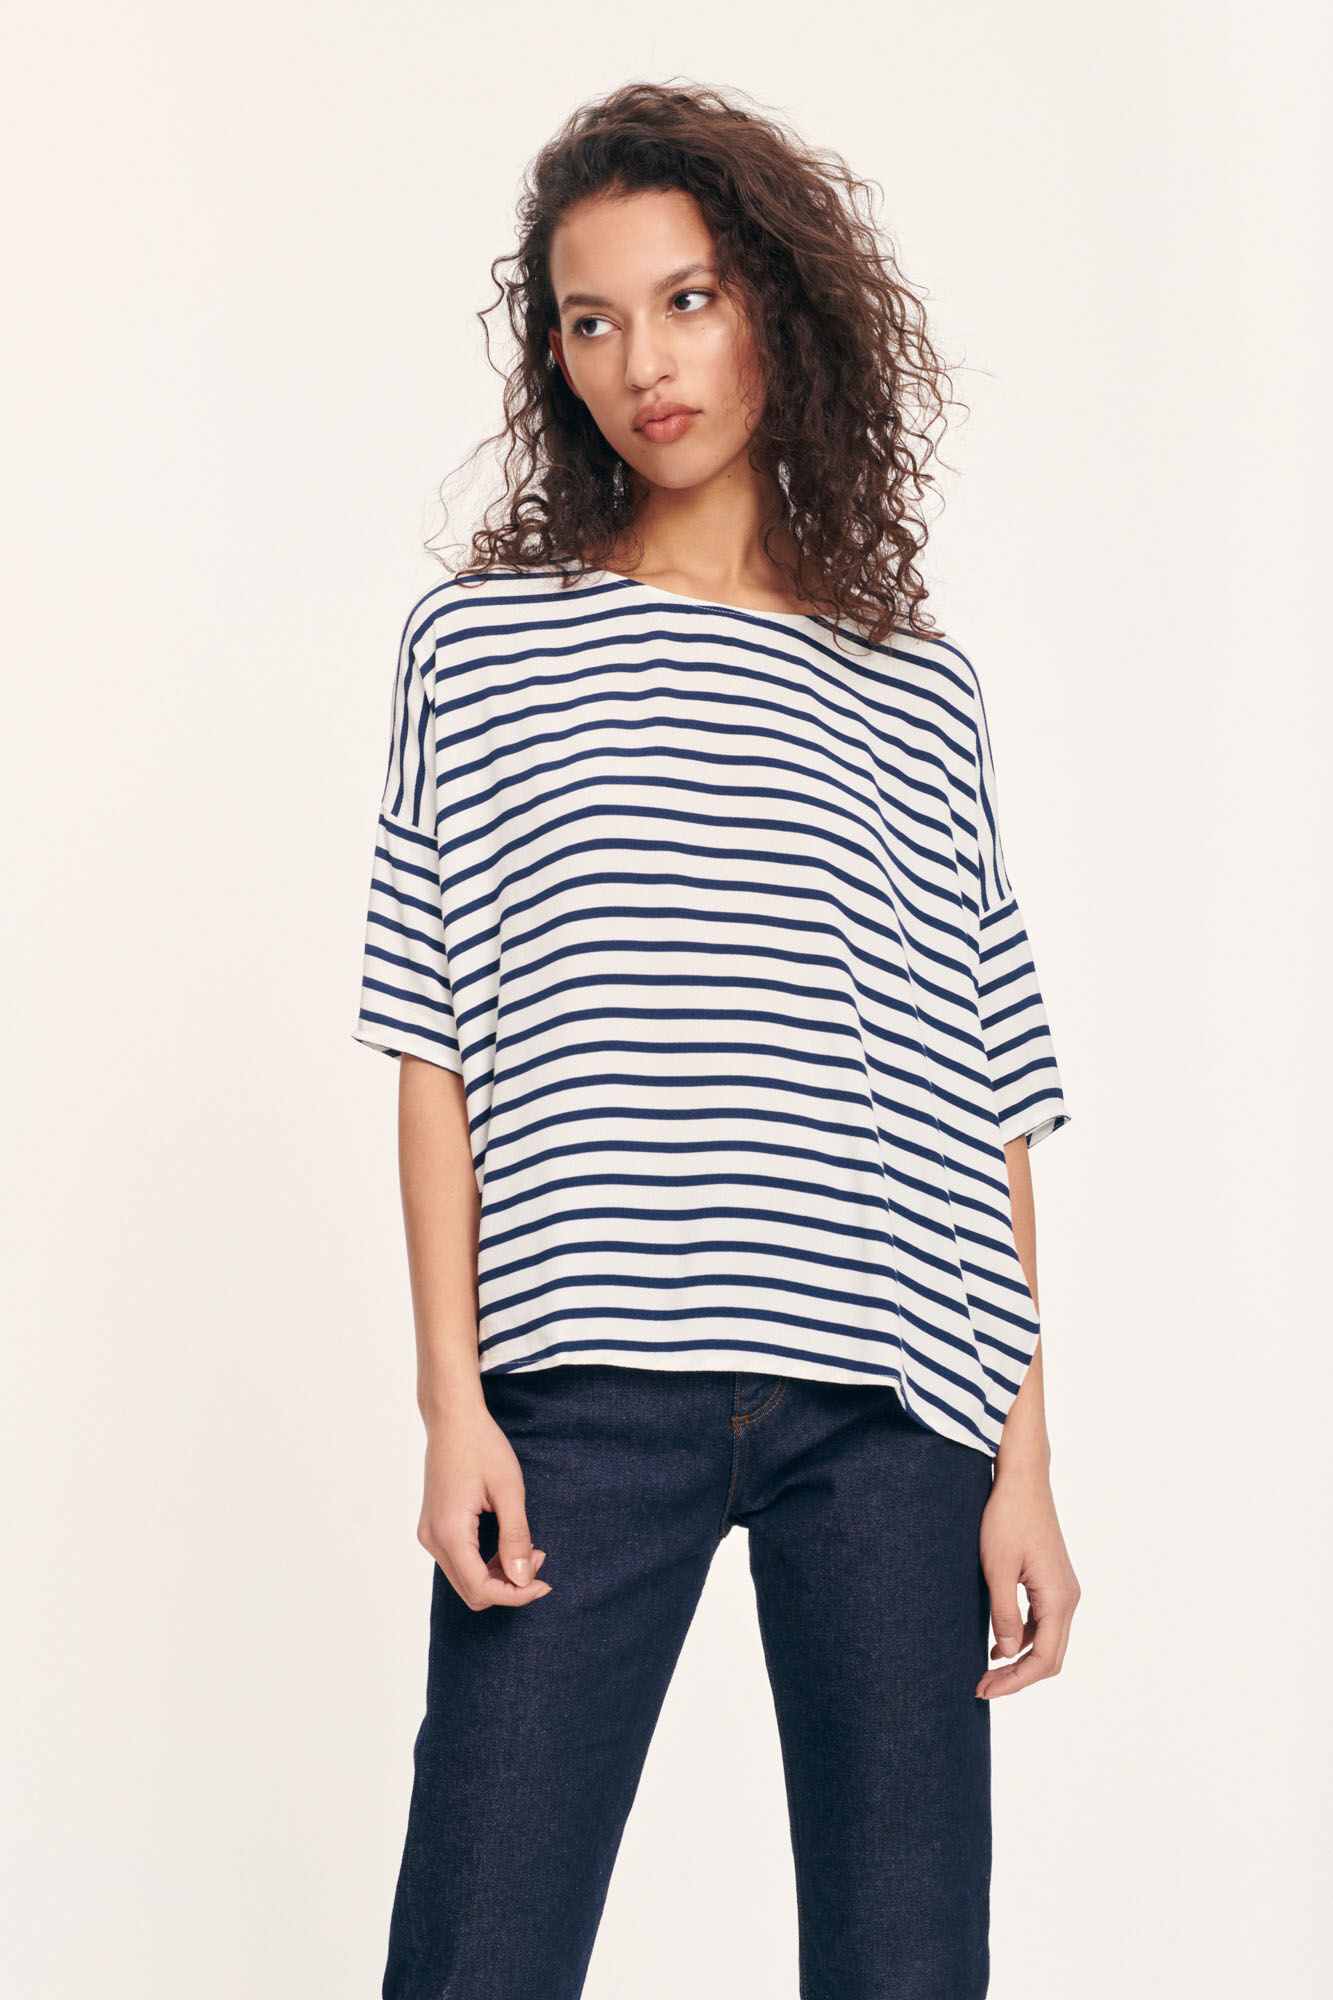 Mains Tee  White Blue Cream Stripe 5687-4